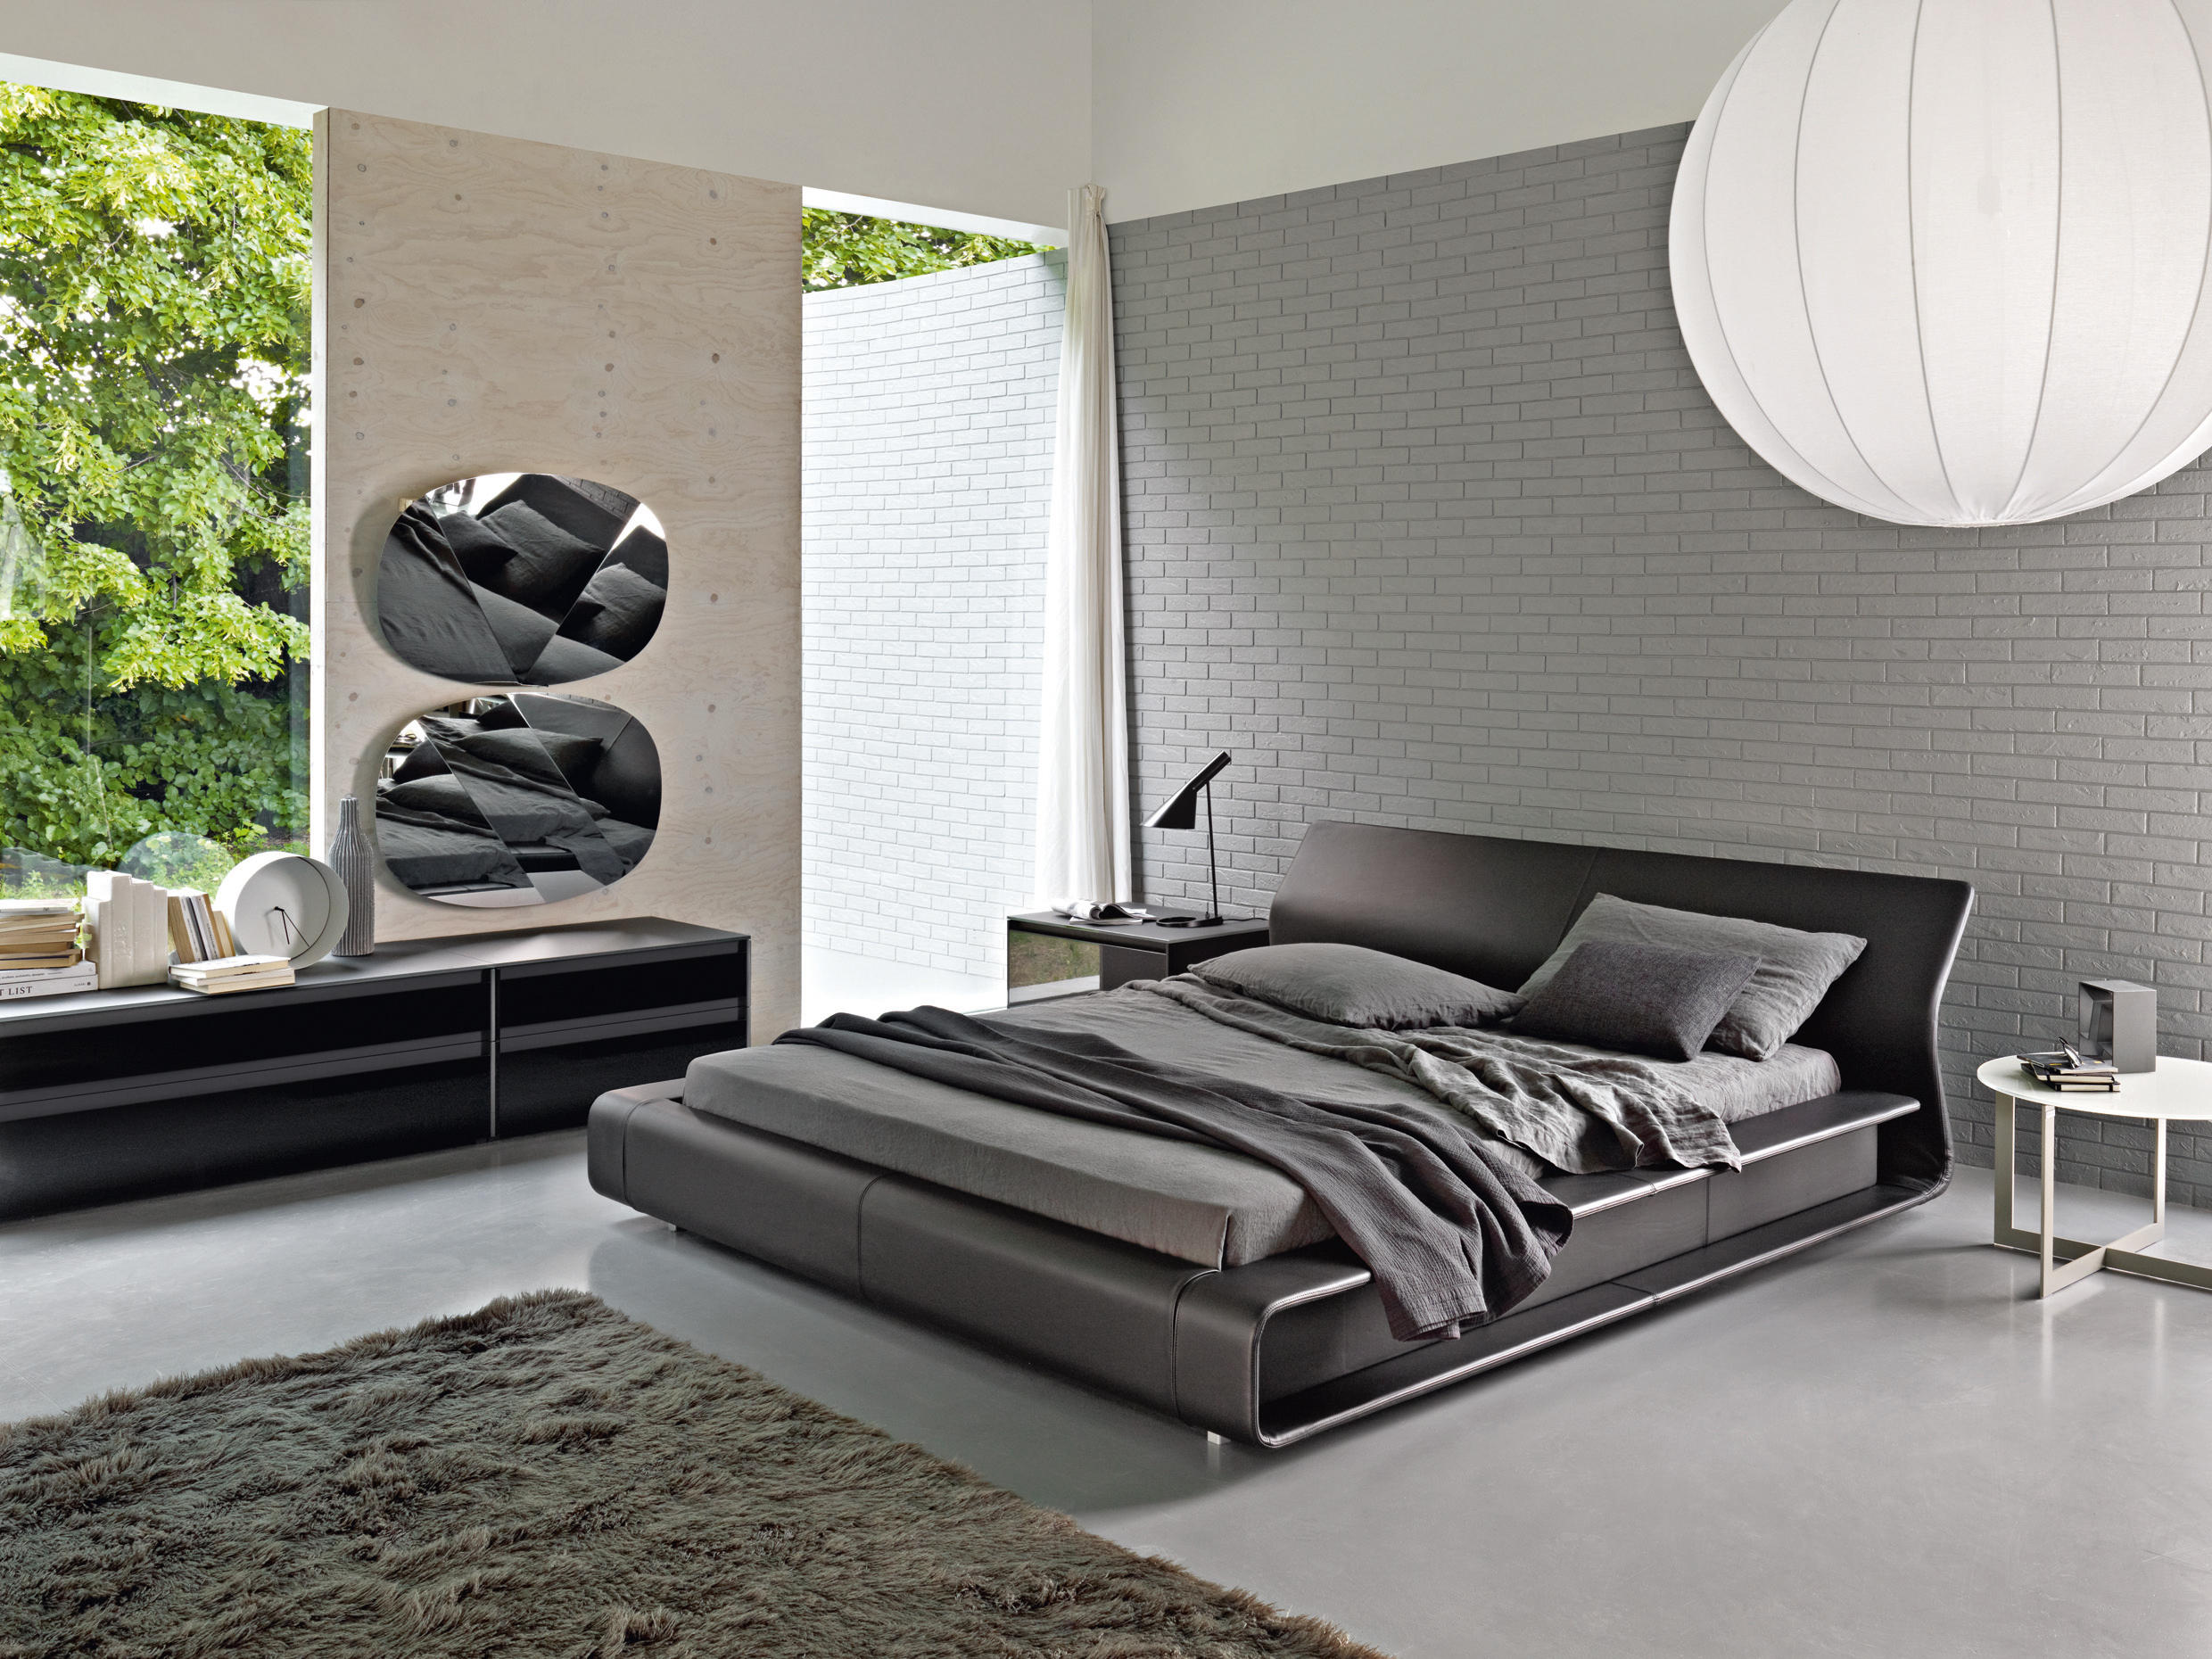 Clip double beds from molteni c architonic for Molteni furniture